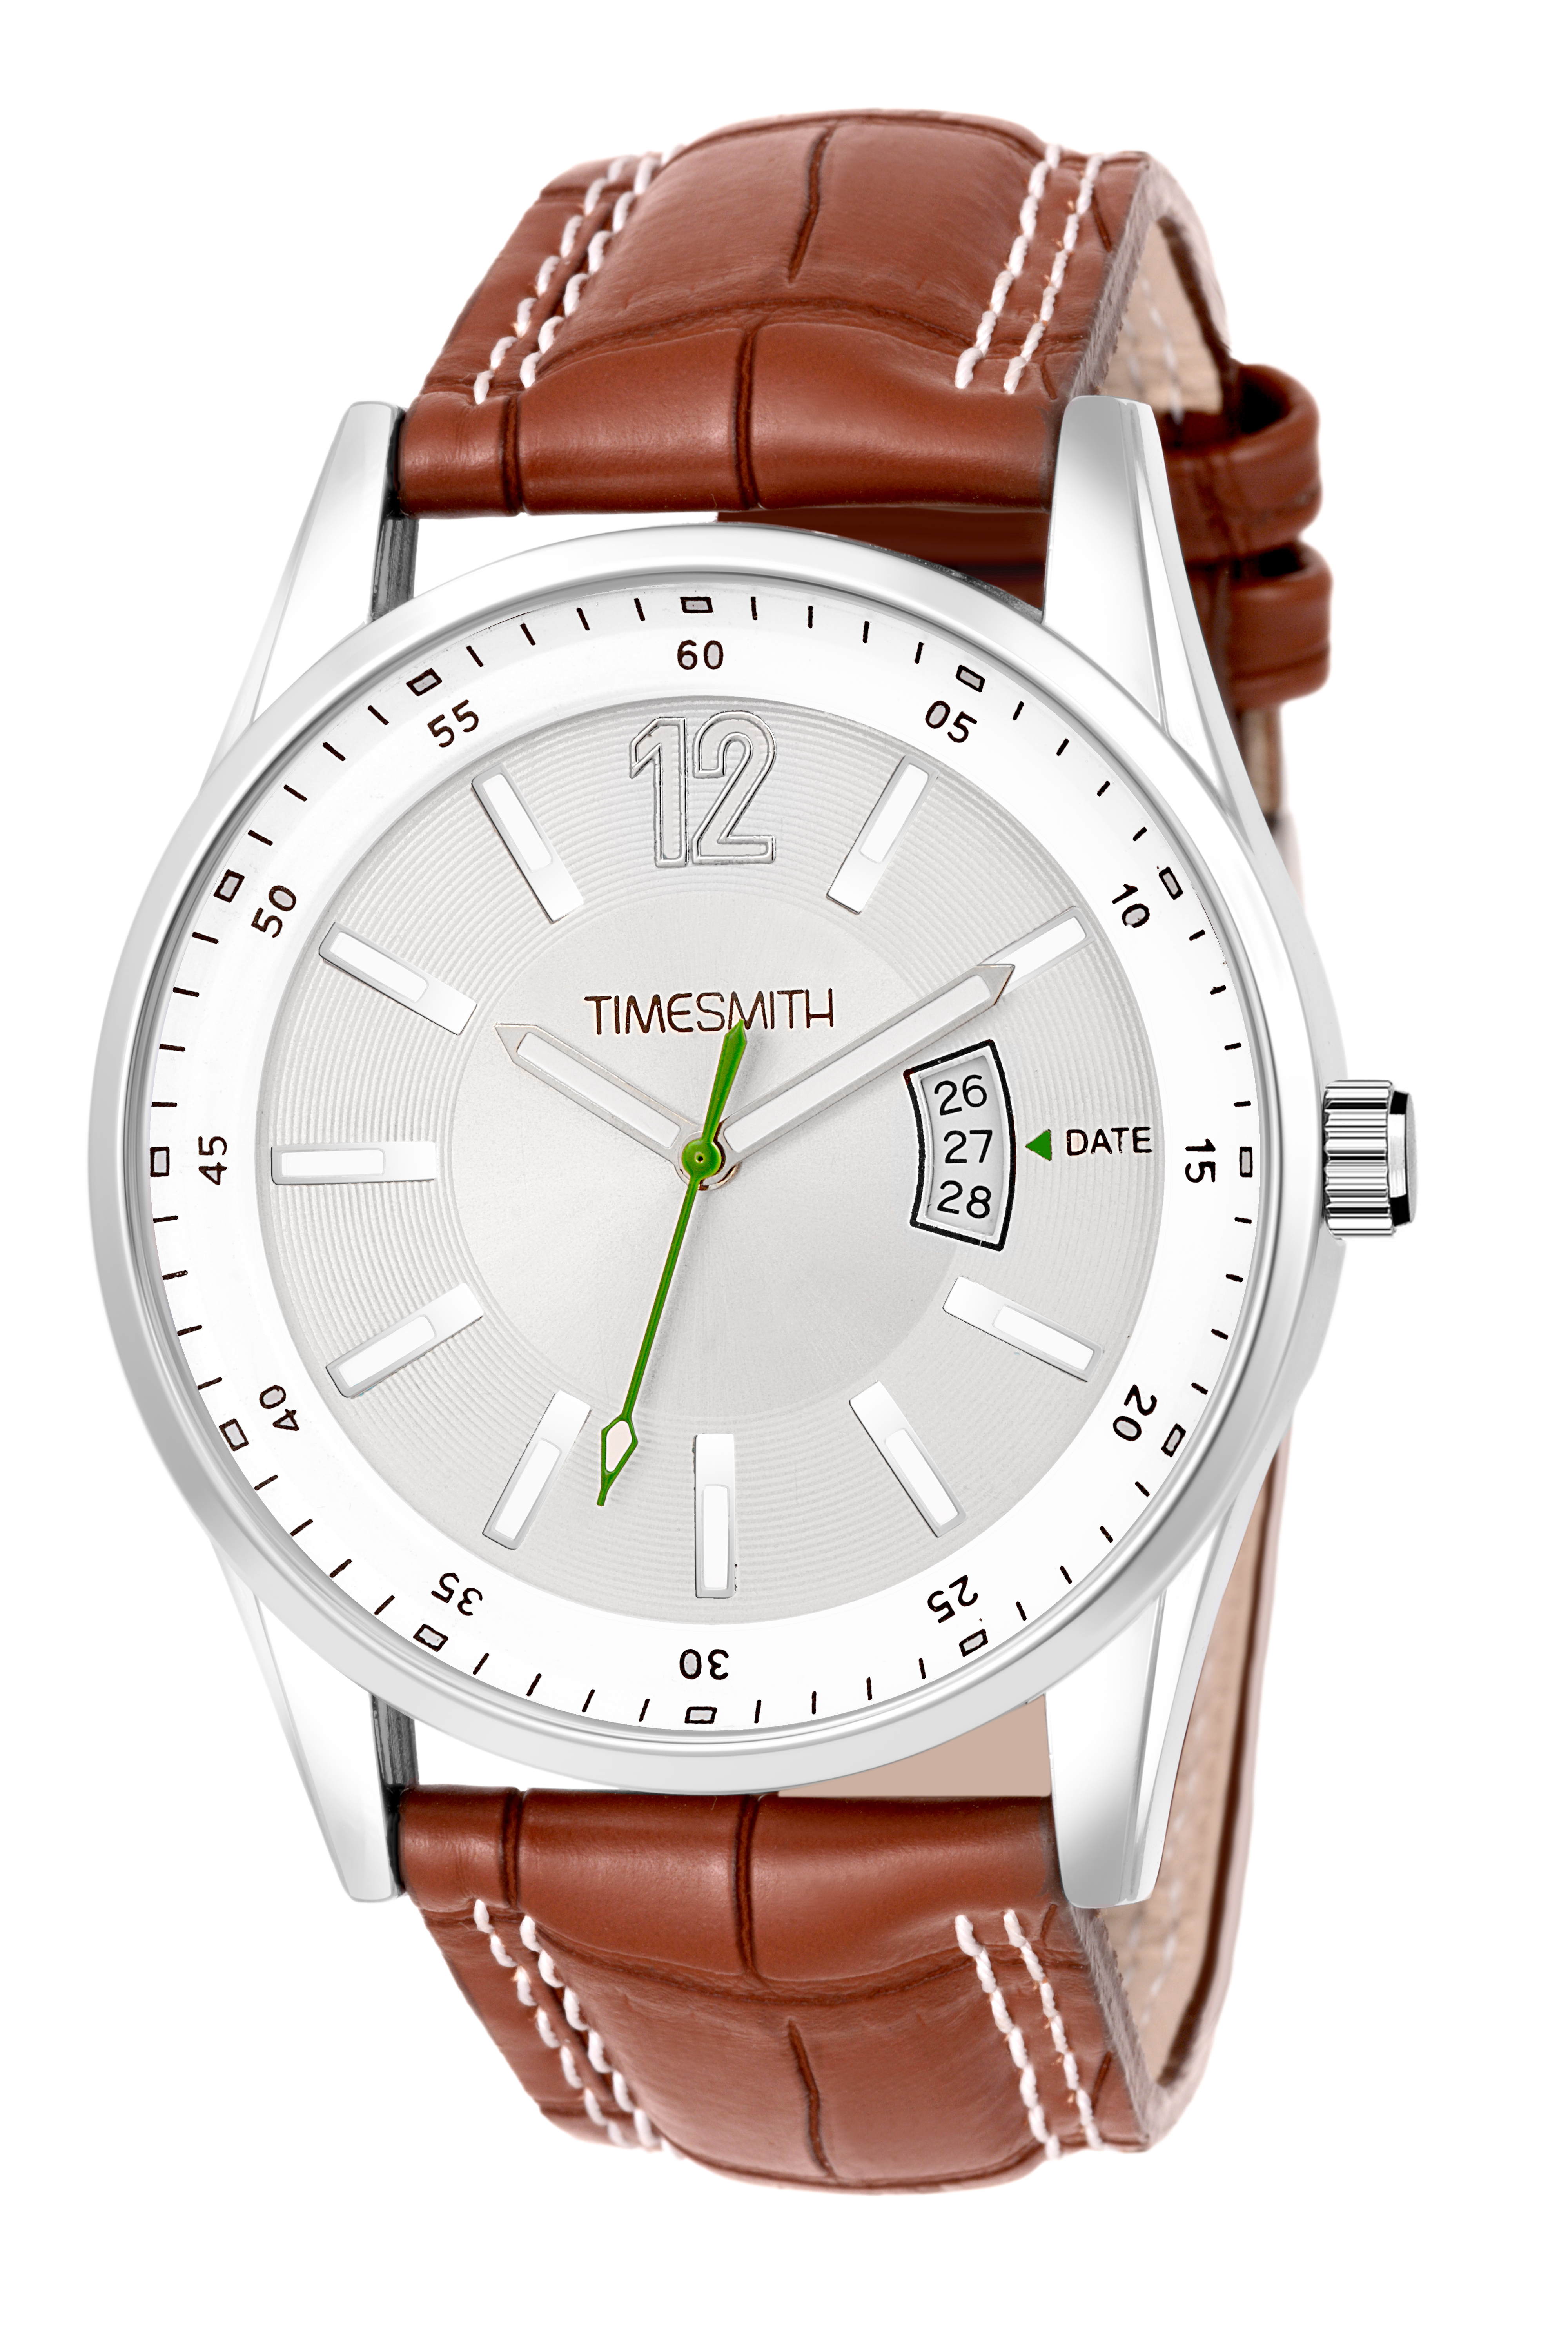 Timesmith   Timesmith White Dial Brown Leather Strap Day Date Men's Watch TSC-128 For Men